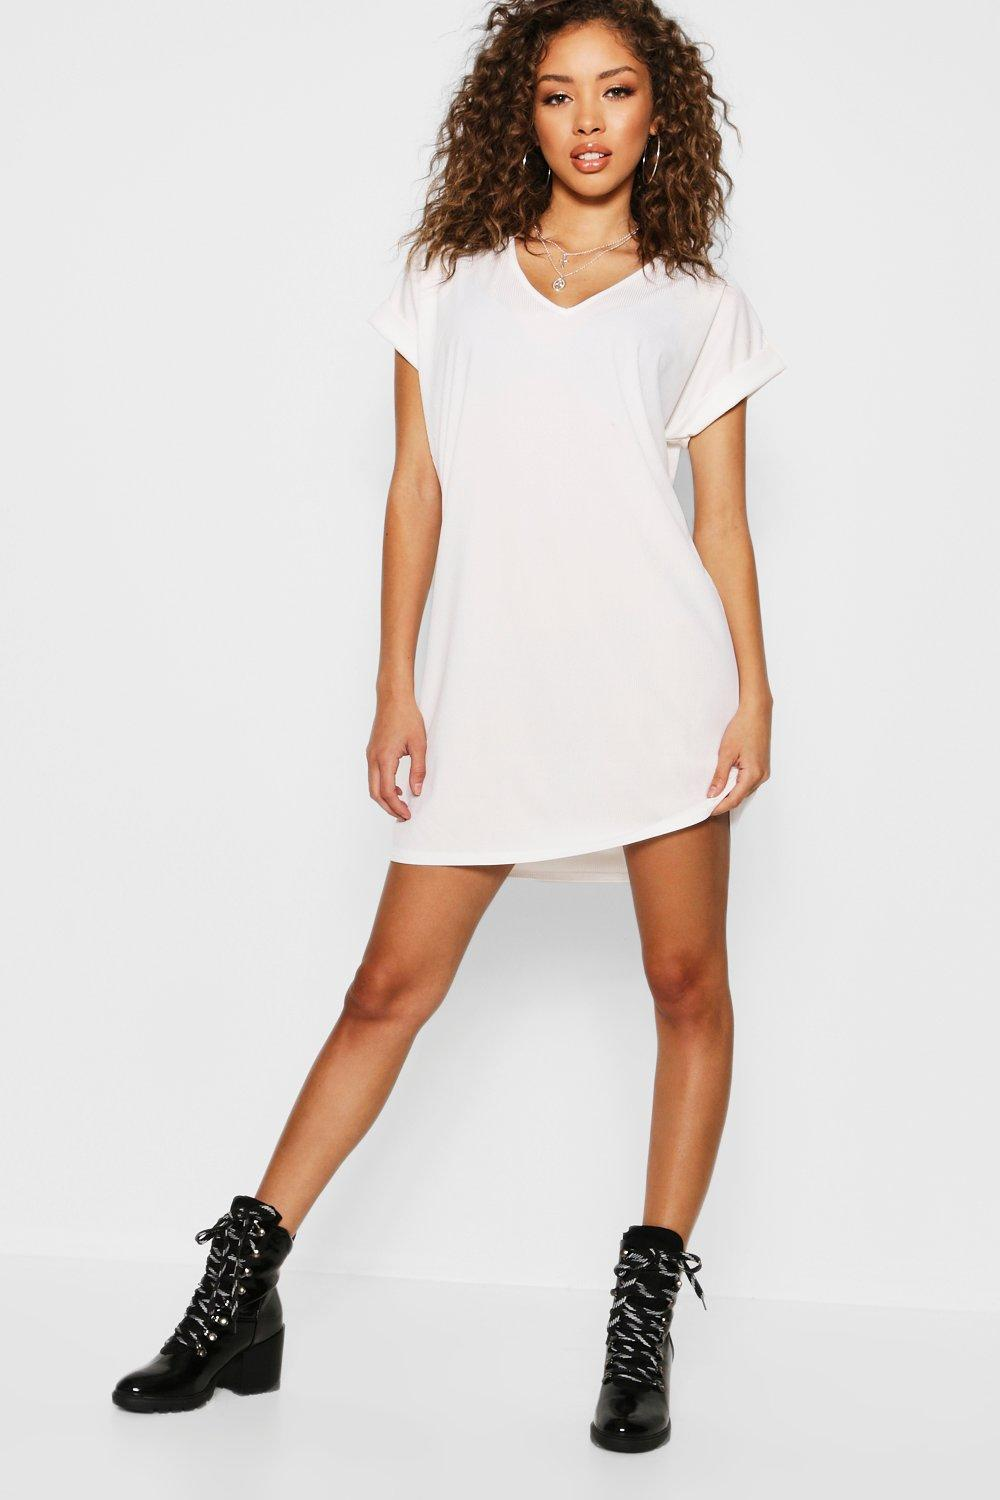 748cfc0648a4 Ribbed V Neck Oversized T-Shirt Dress. Hover to zoom